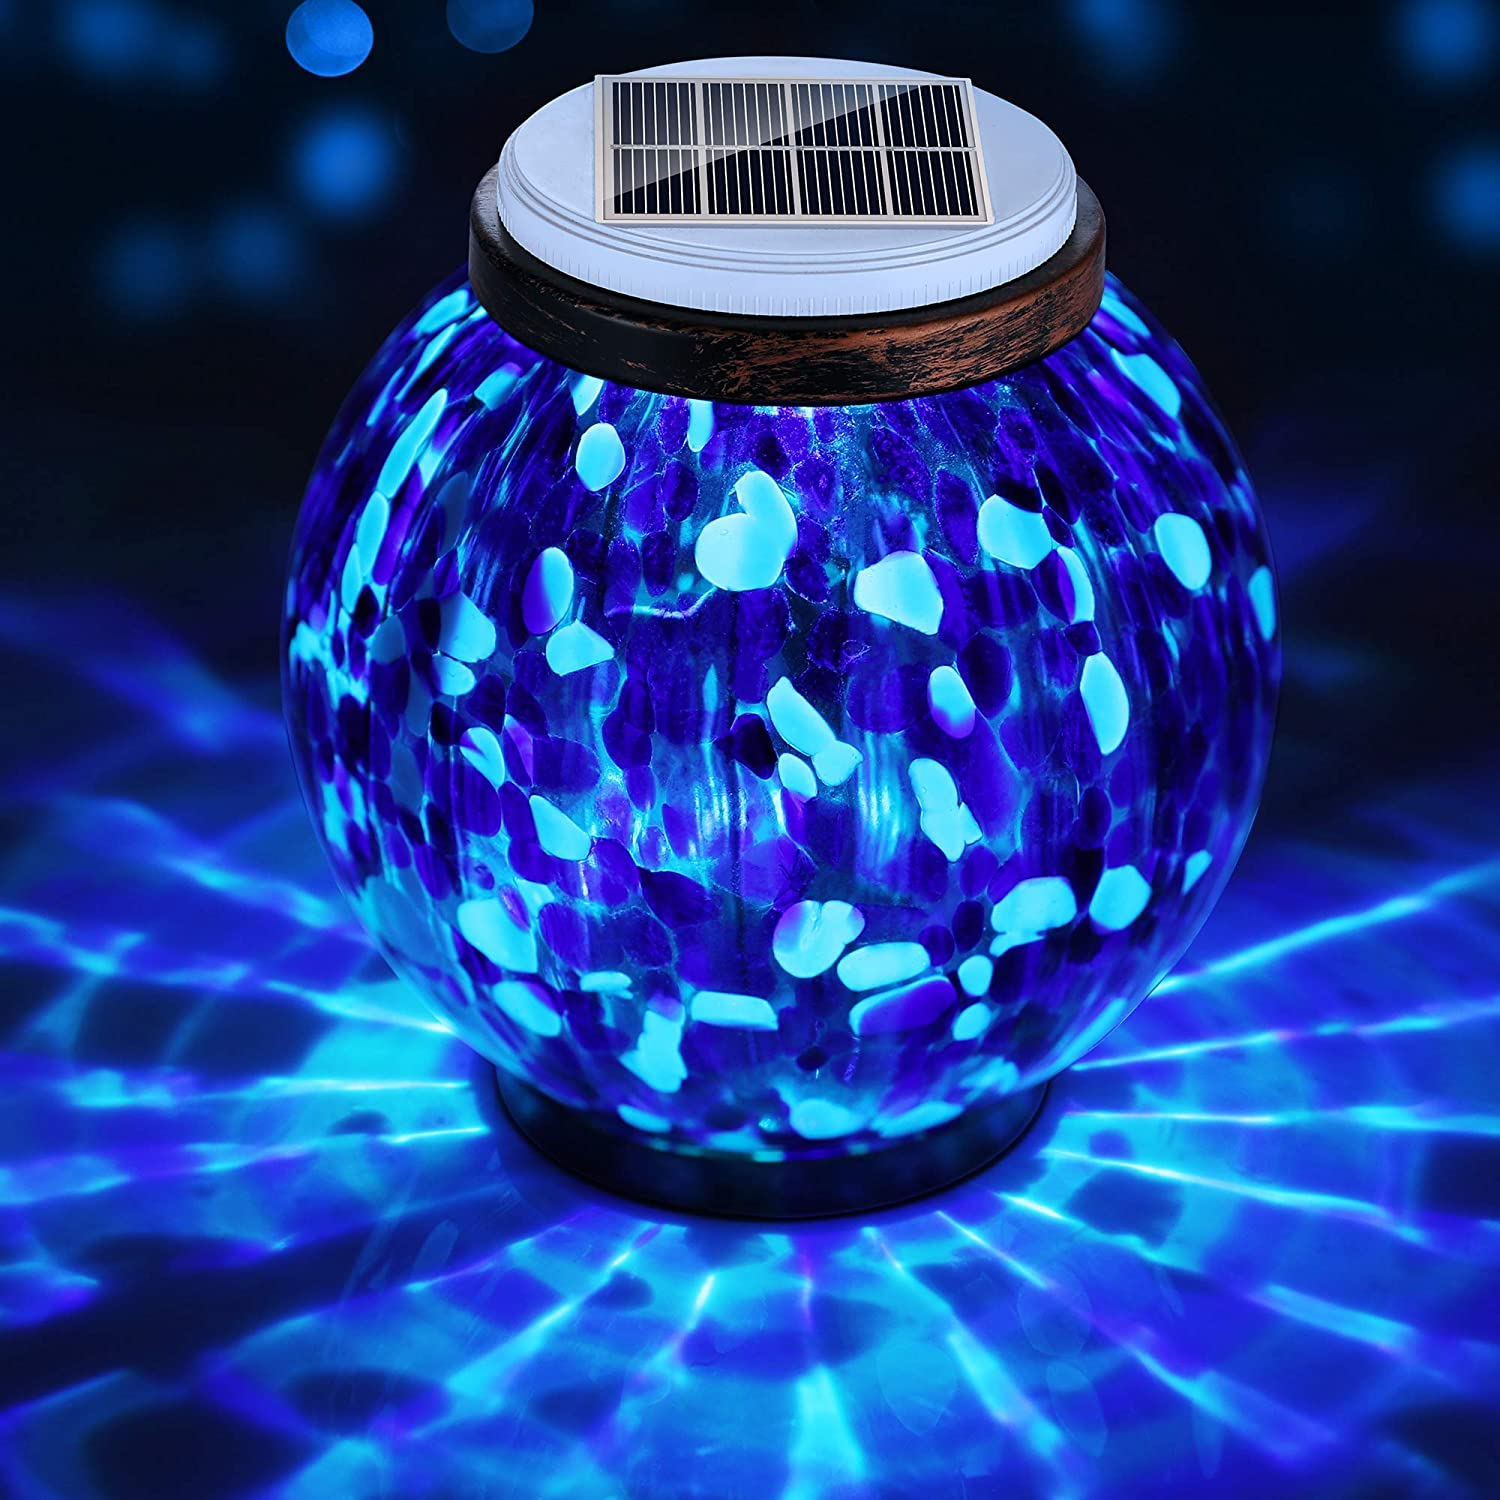 Pandawill Mosaic Solar Glass Garden Light, Rechargeable Outdoor Hanging Light Metal Decorative Ball Light, Waterproof LED Table Lamp Waterproof Night Light for Patio, Countryyard, Bedroom Party